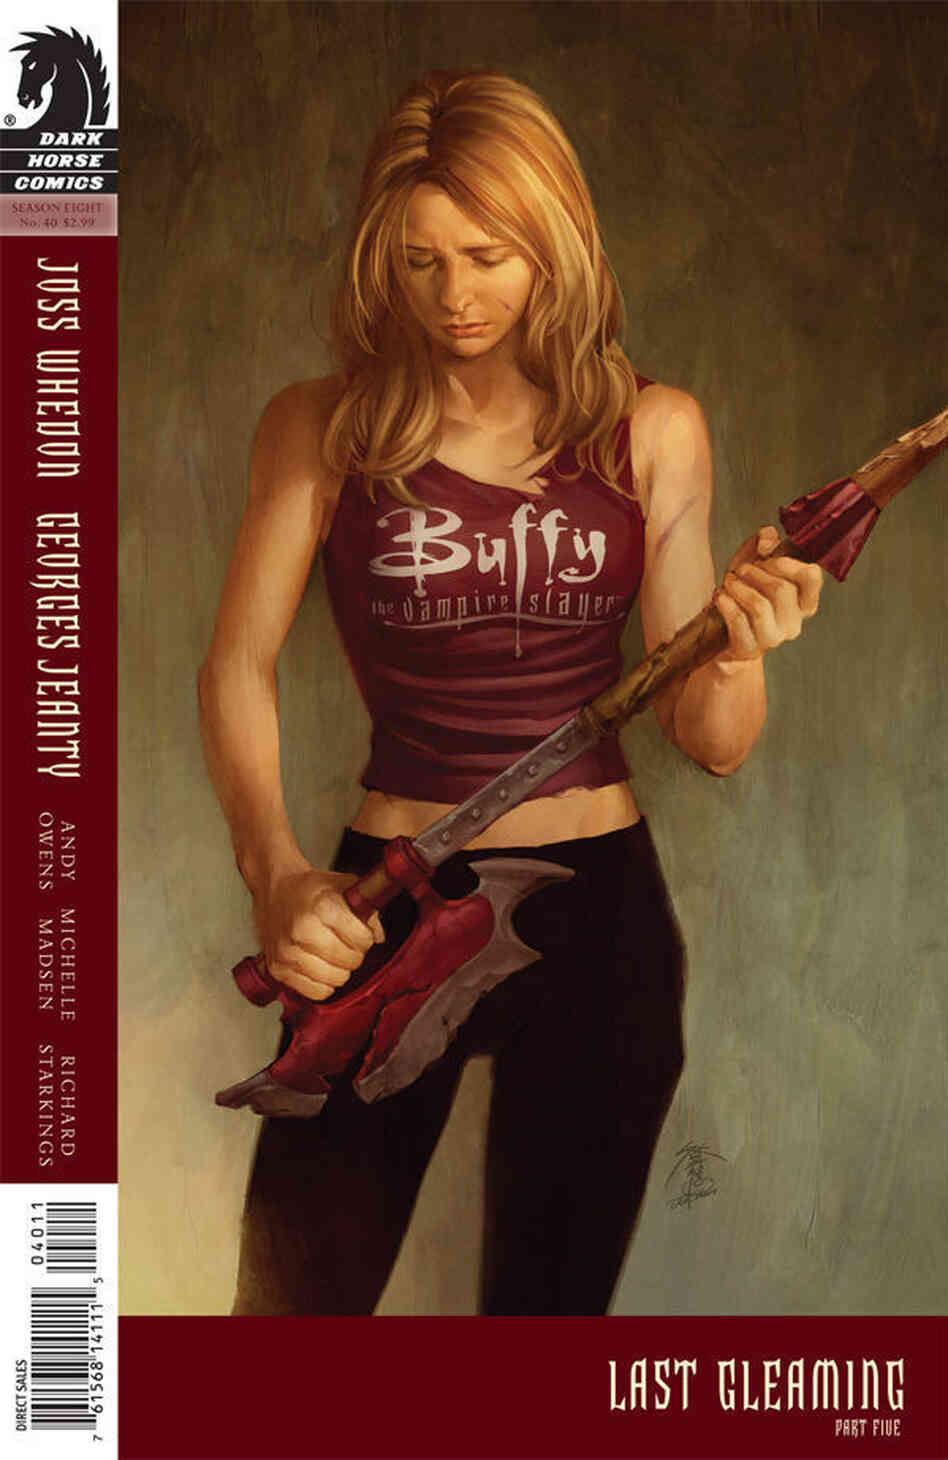 Scythe Matters: Cover of Buffy the Vampire Slayer #40